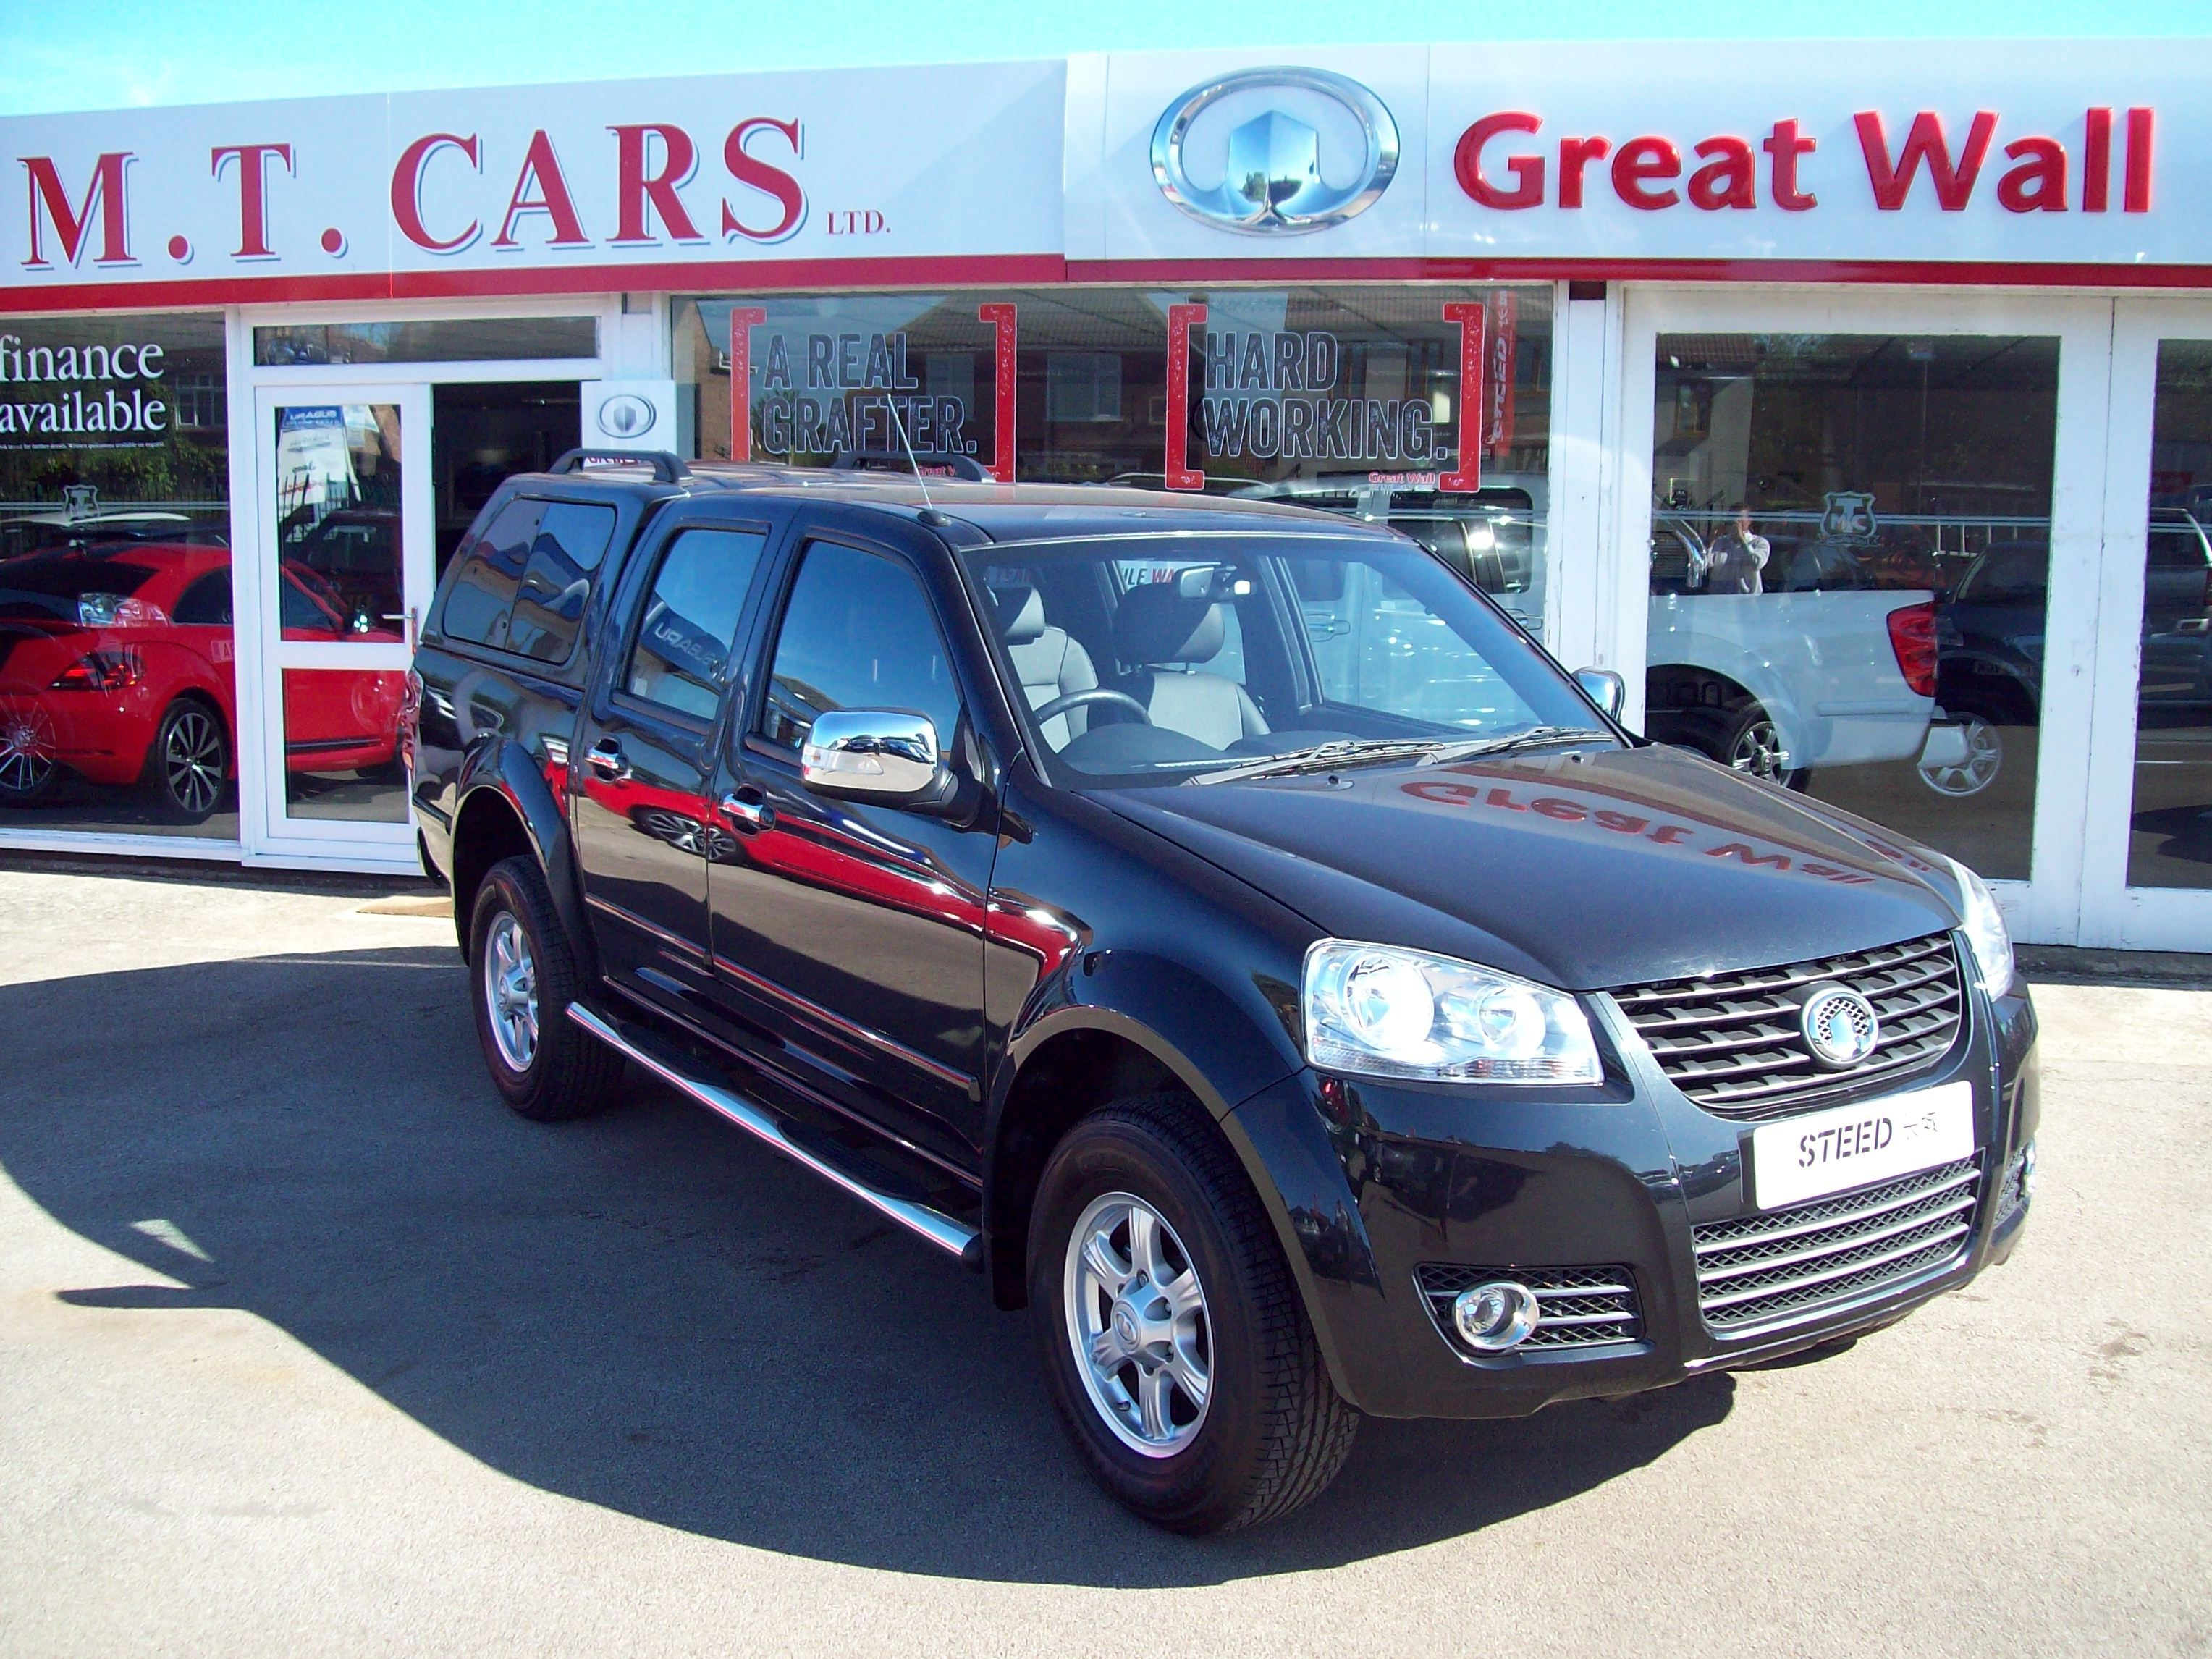 Great Wall Steed SE